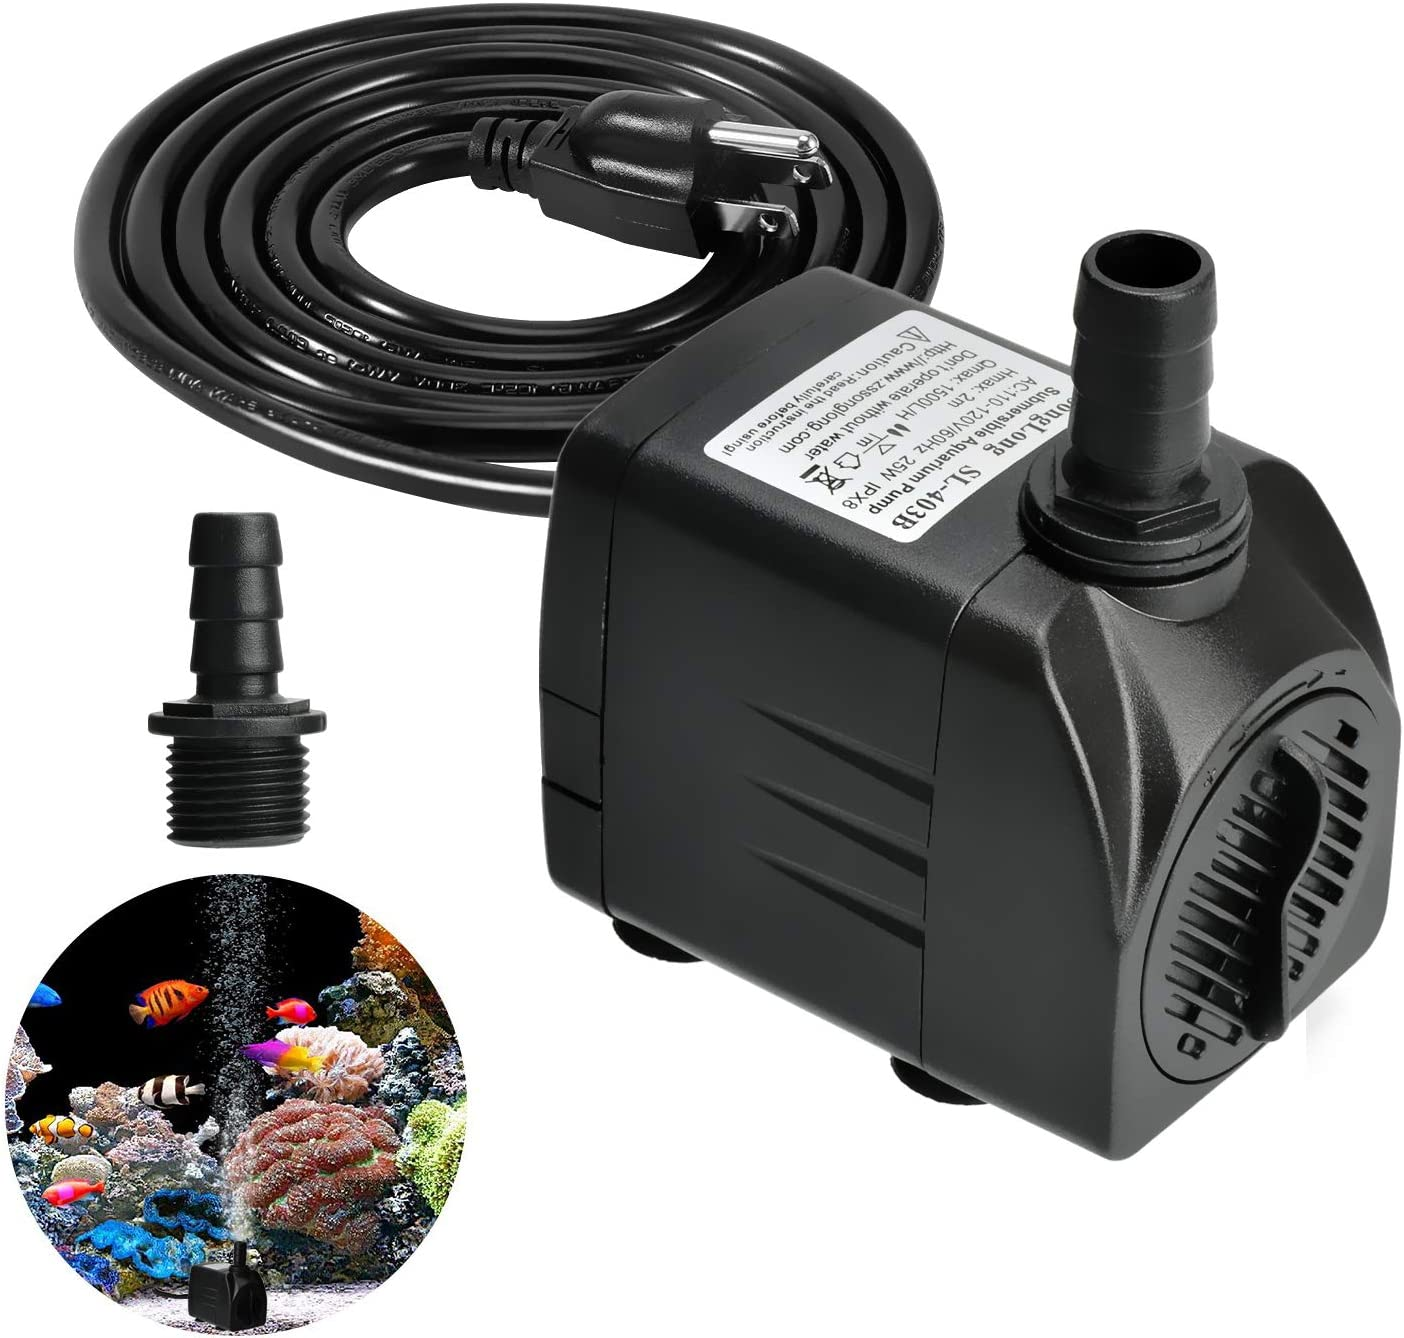 Easily Life Submersible famous Aquarium Water Outdoor High order Fou Pump Durable